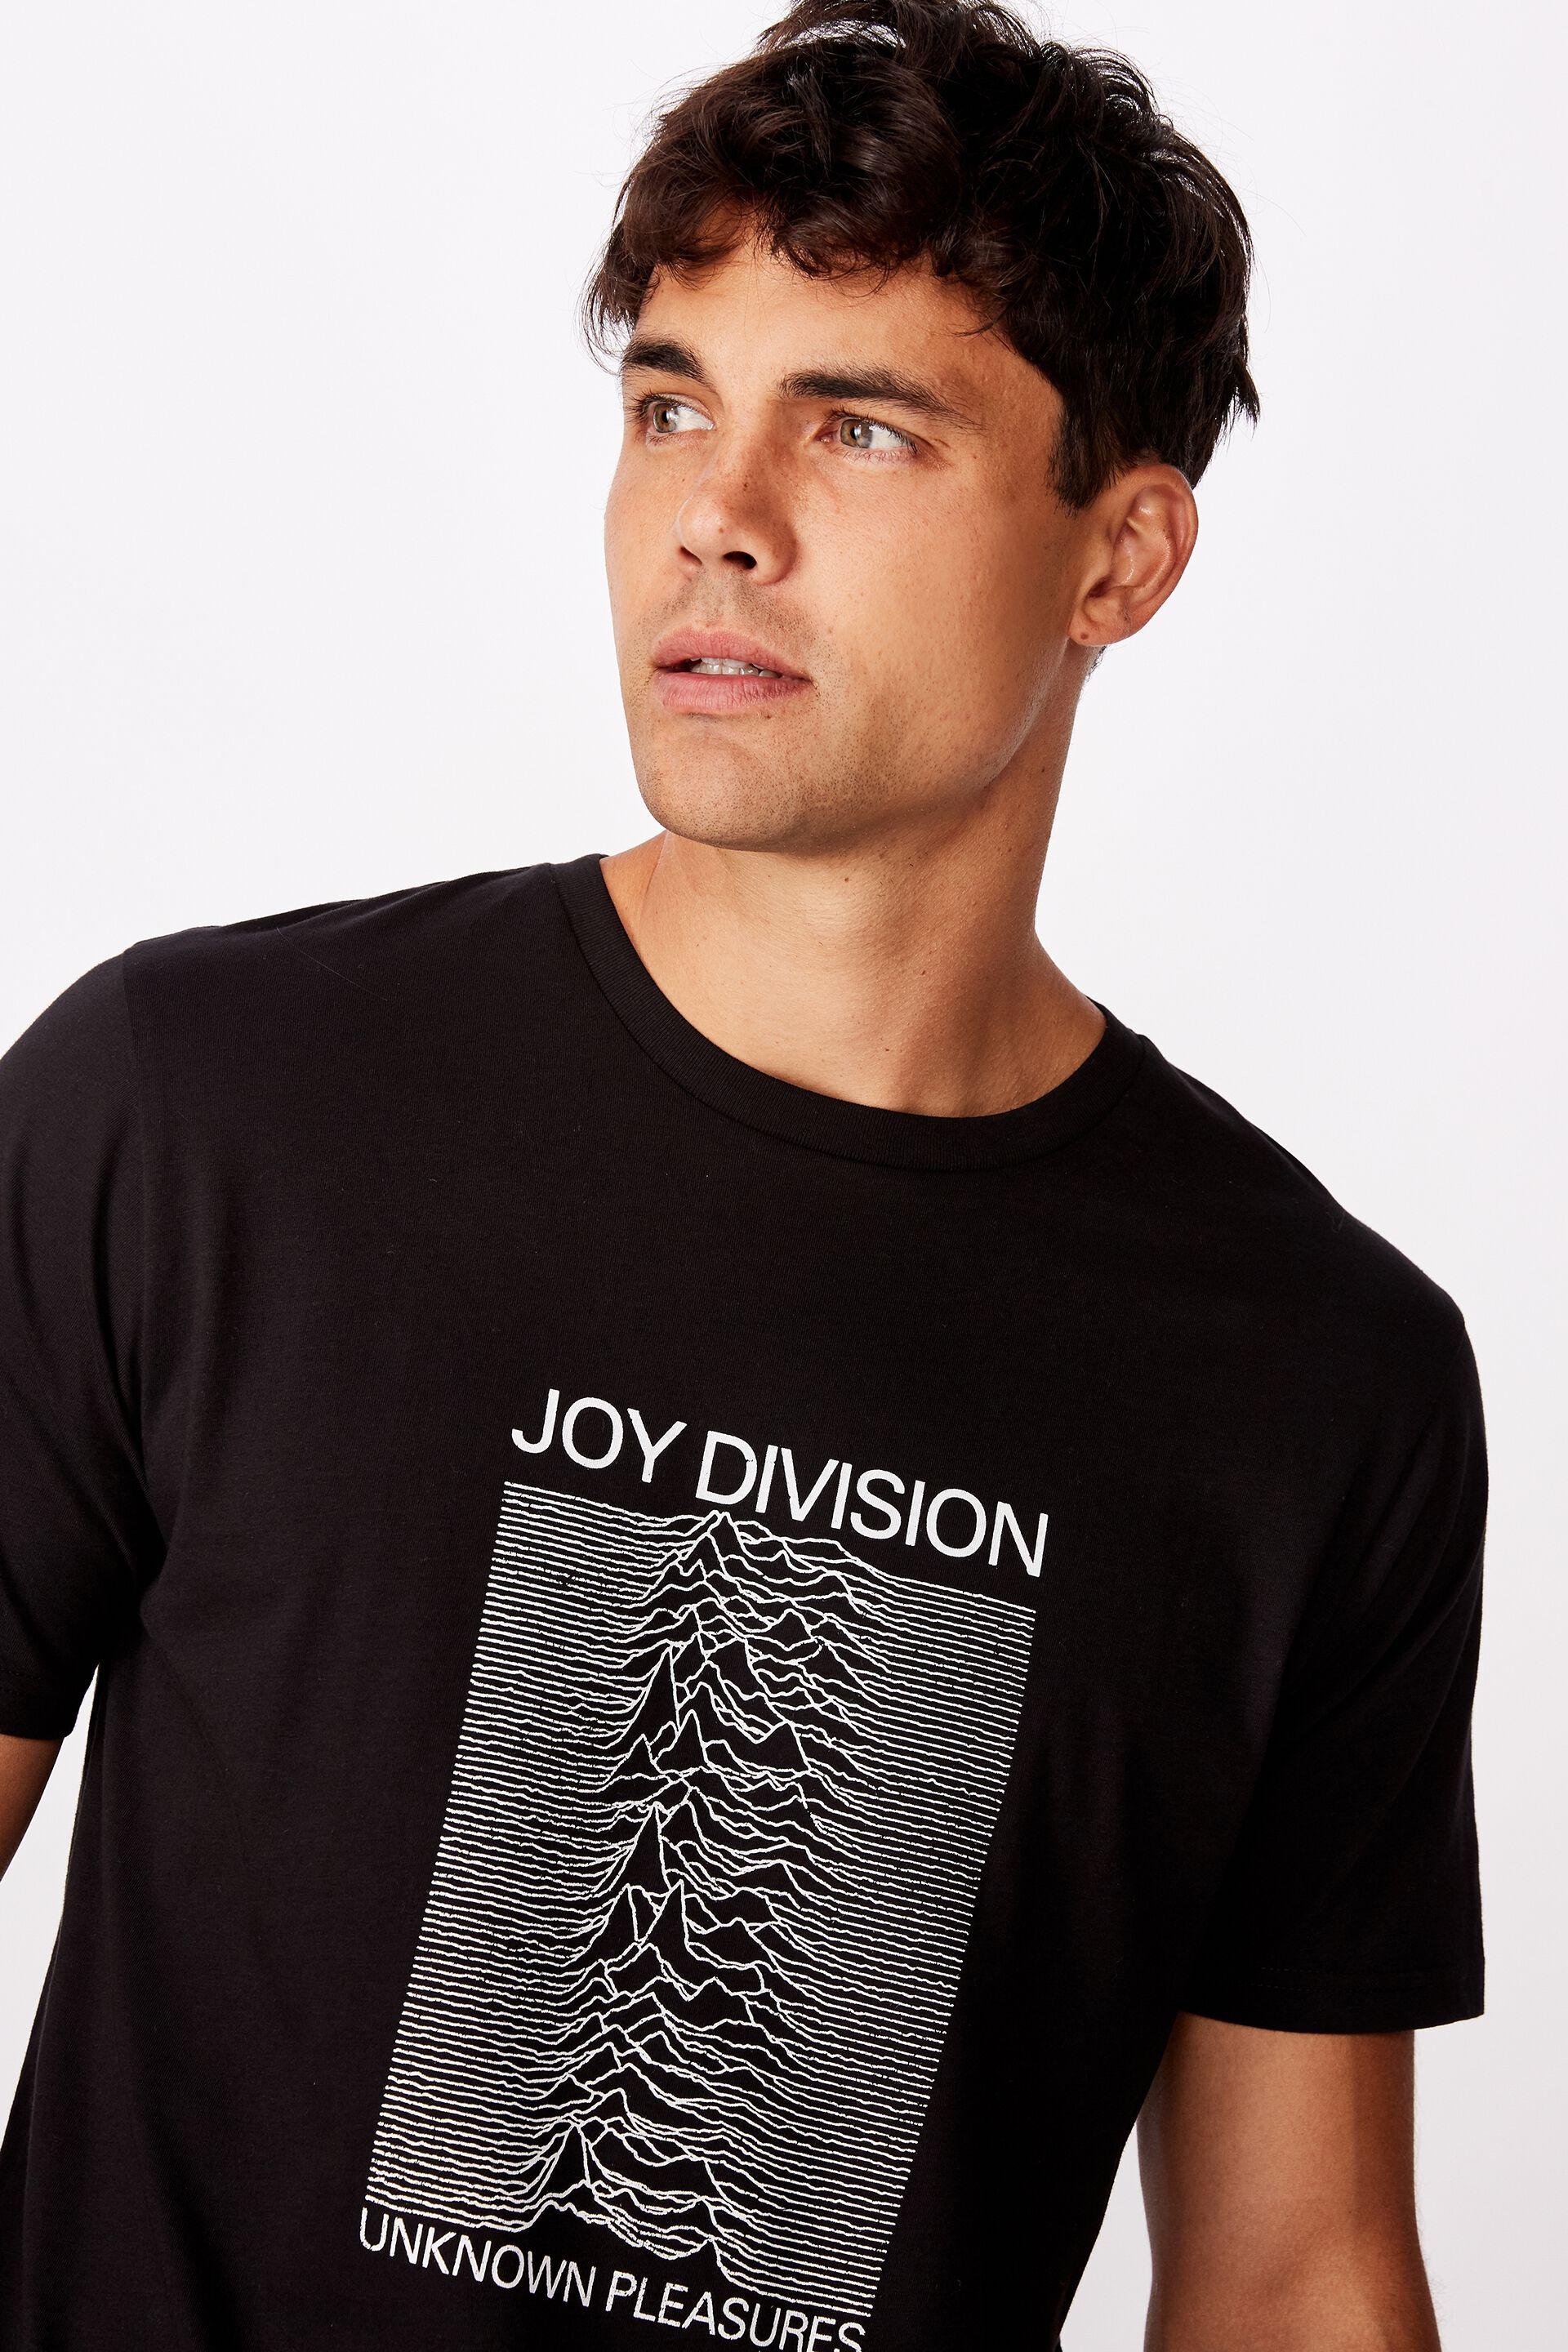 Men's Graphic T Shirts & Band Tees | Cotton On